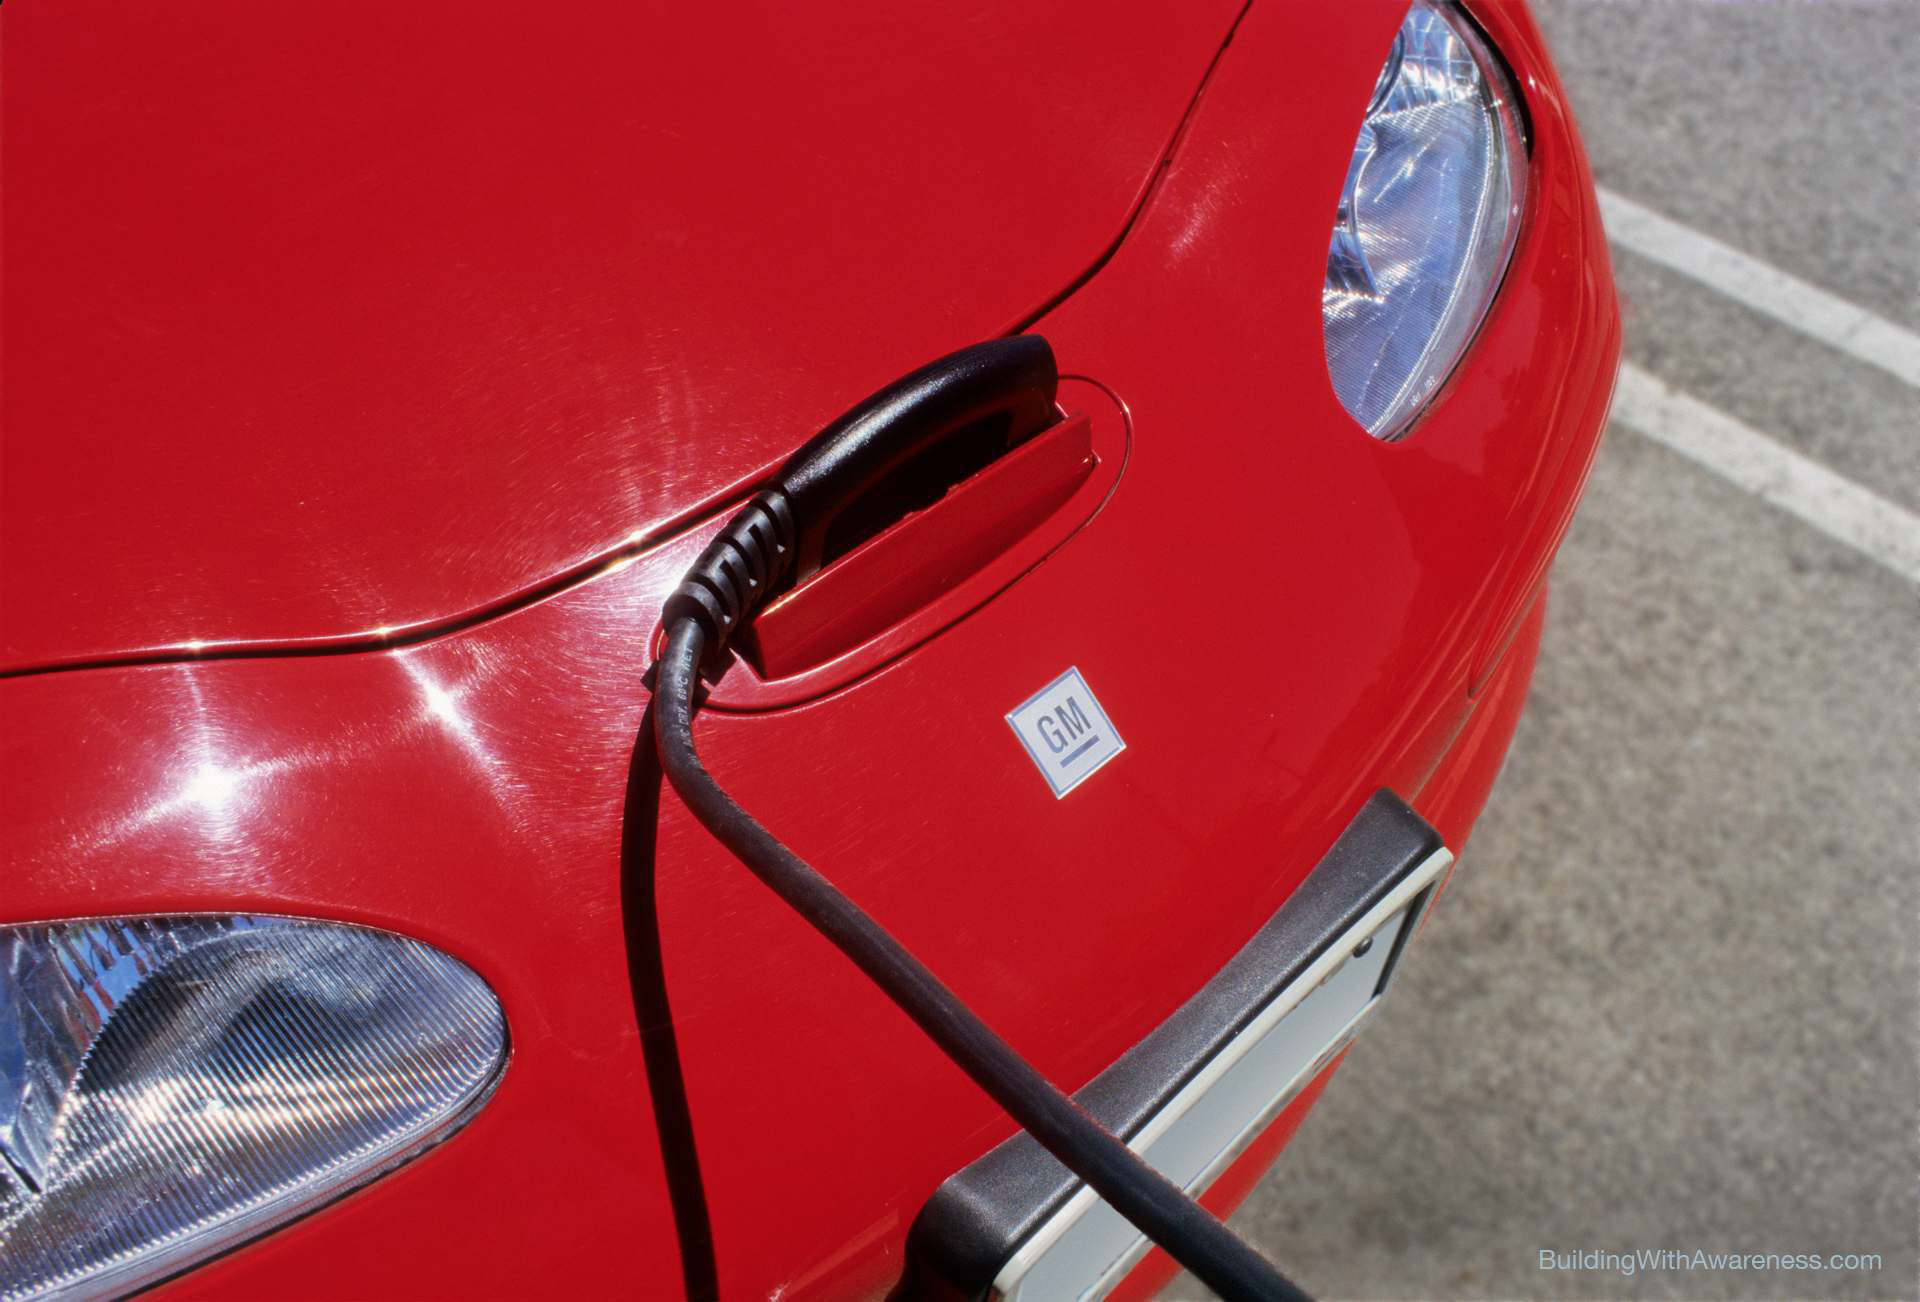 EV1 electric car being charged.